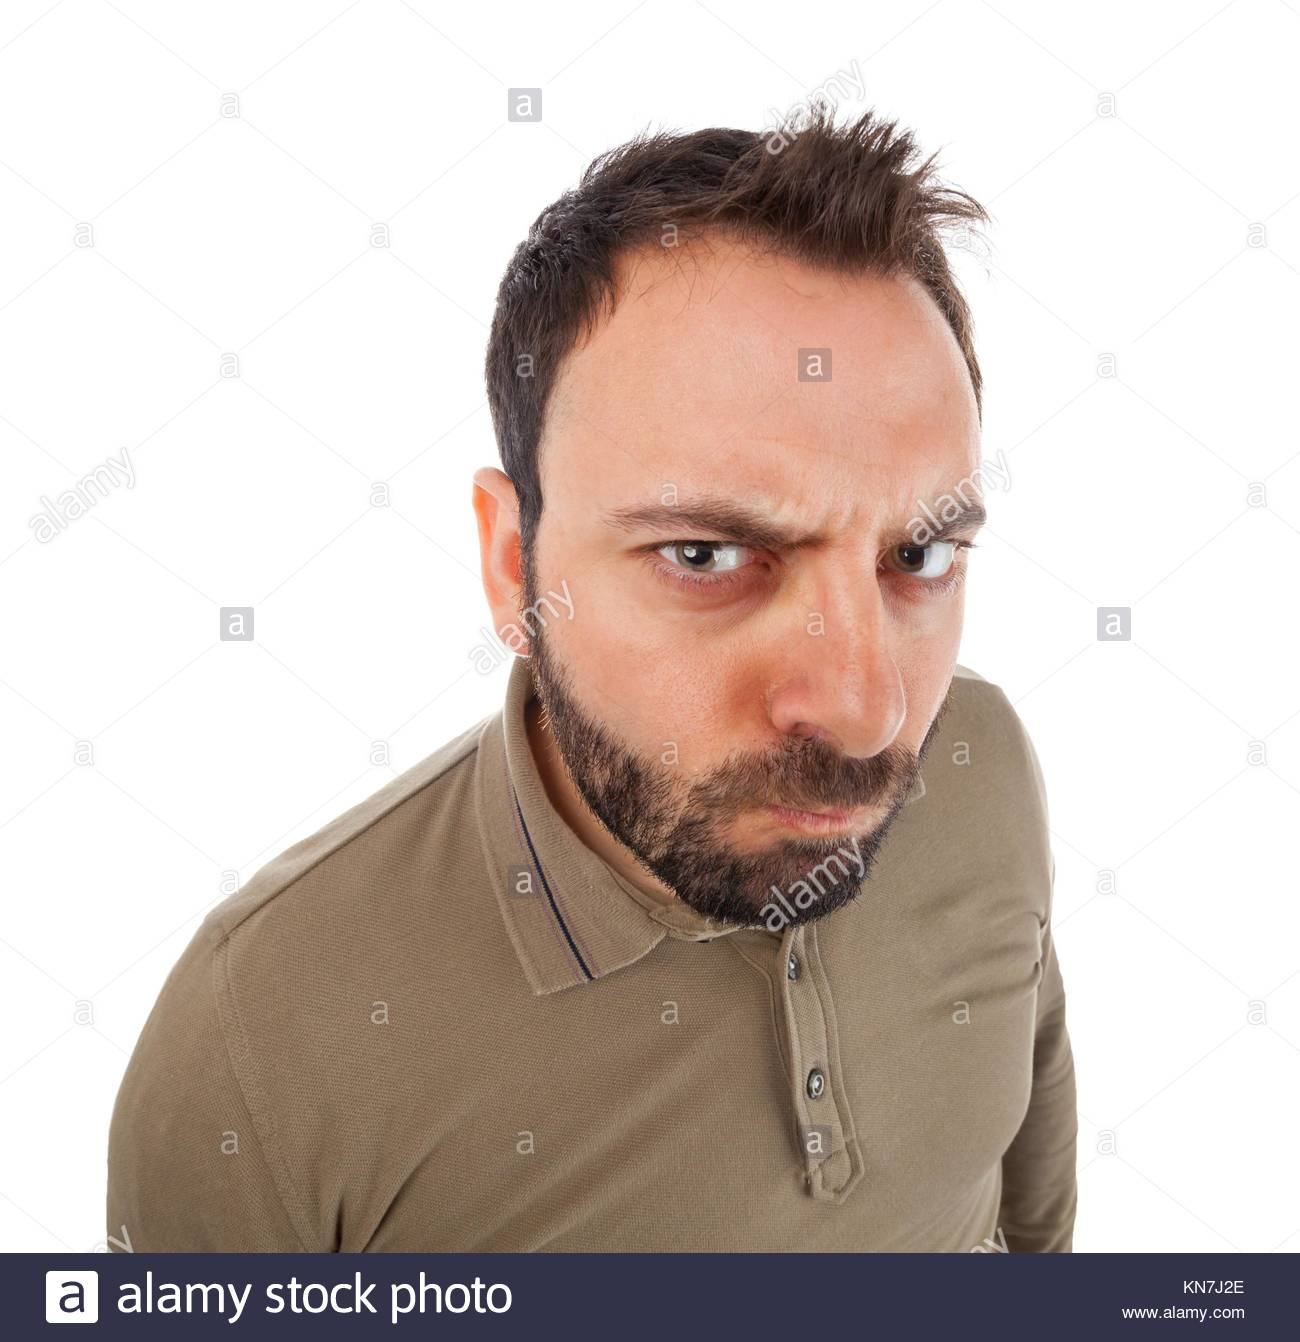 Young man with angry expression on white background. - Stock Image